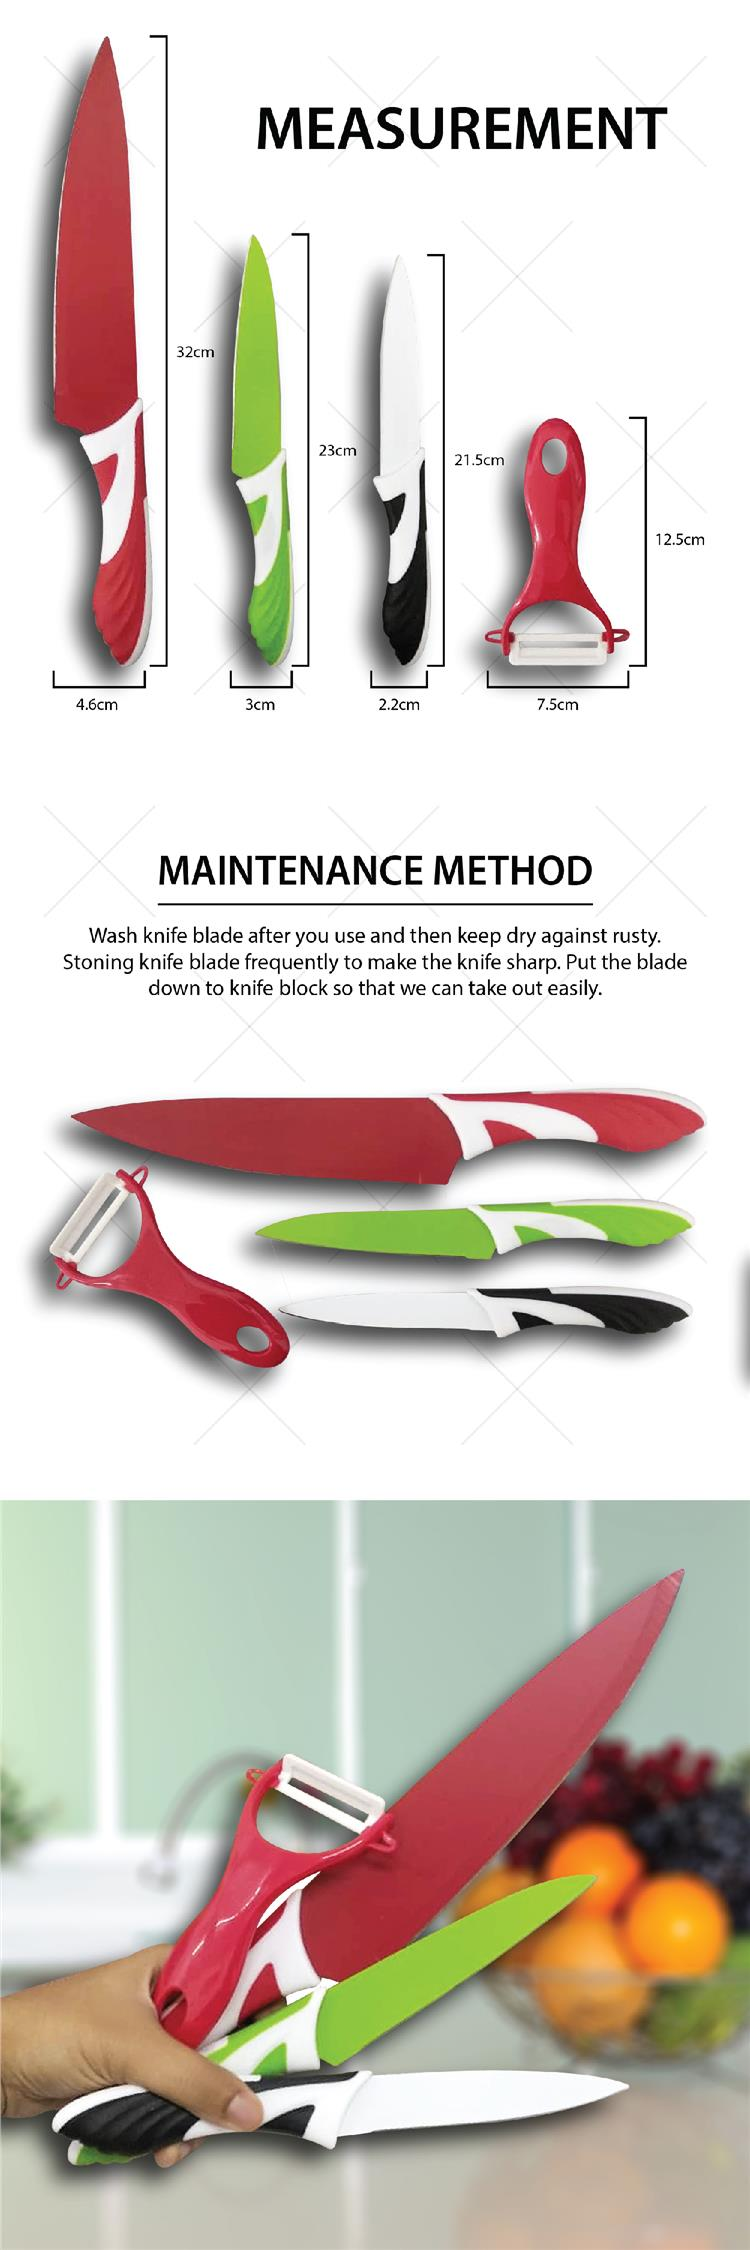 Deluxe 3pcs Stainless Steel Kitchen Knife Set Colorful Knives Kitchen